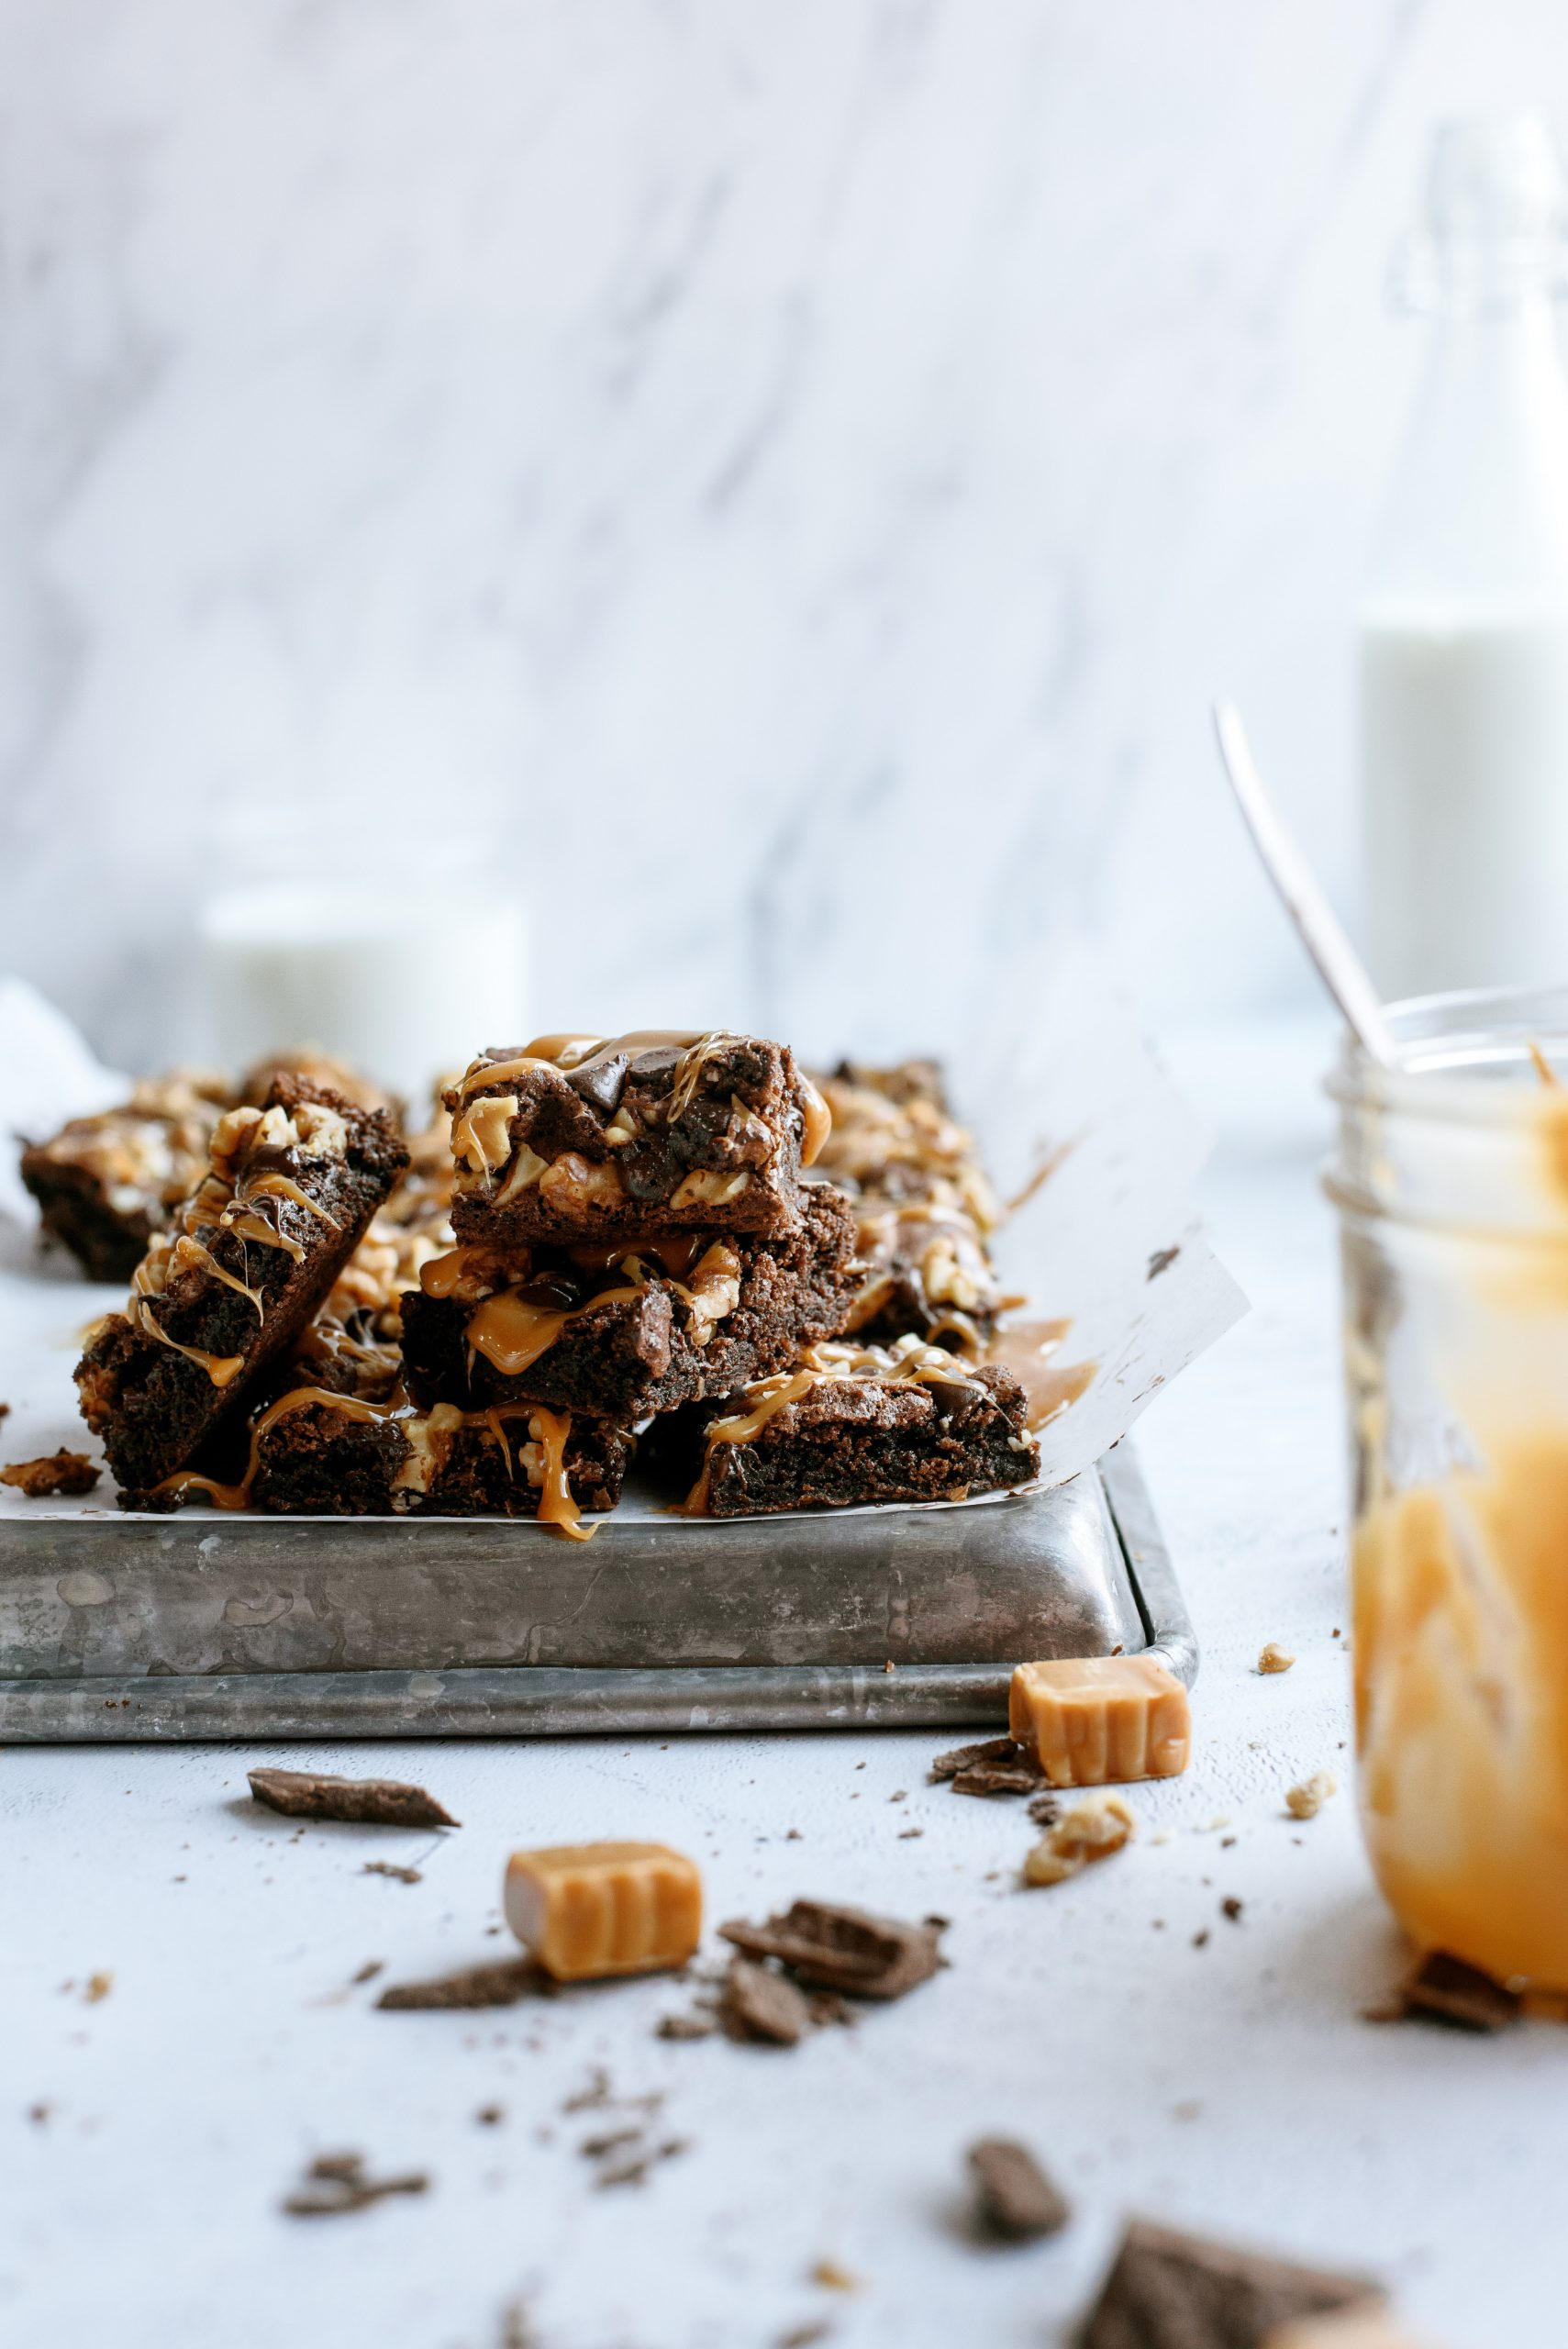 Chocolate Turtle Brownies on a pan with caramel and chocolate shavings